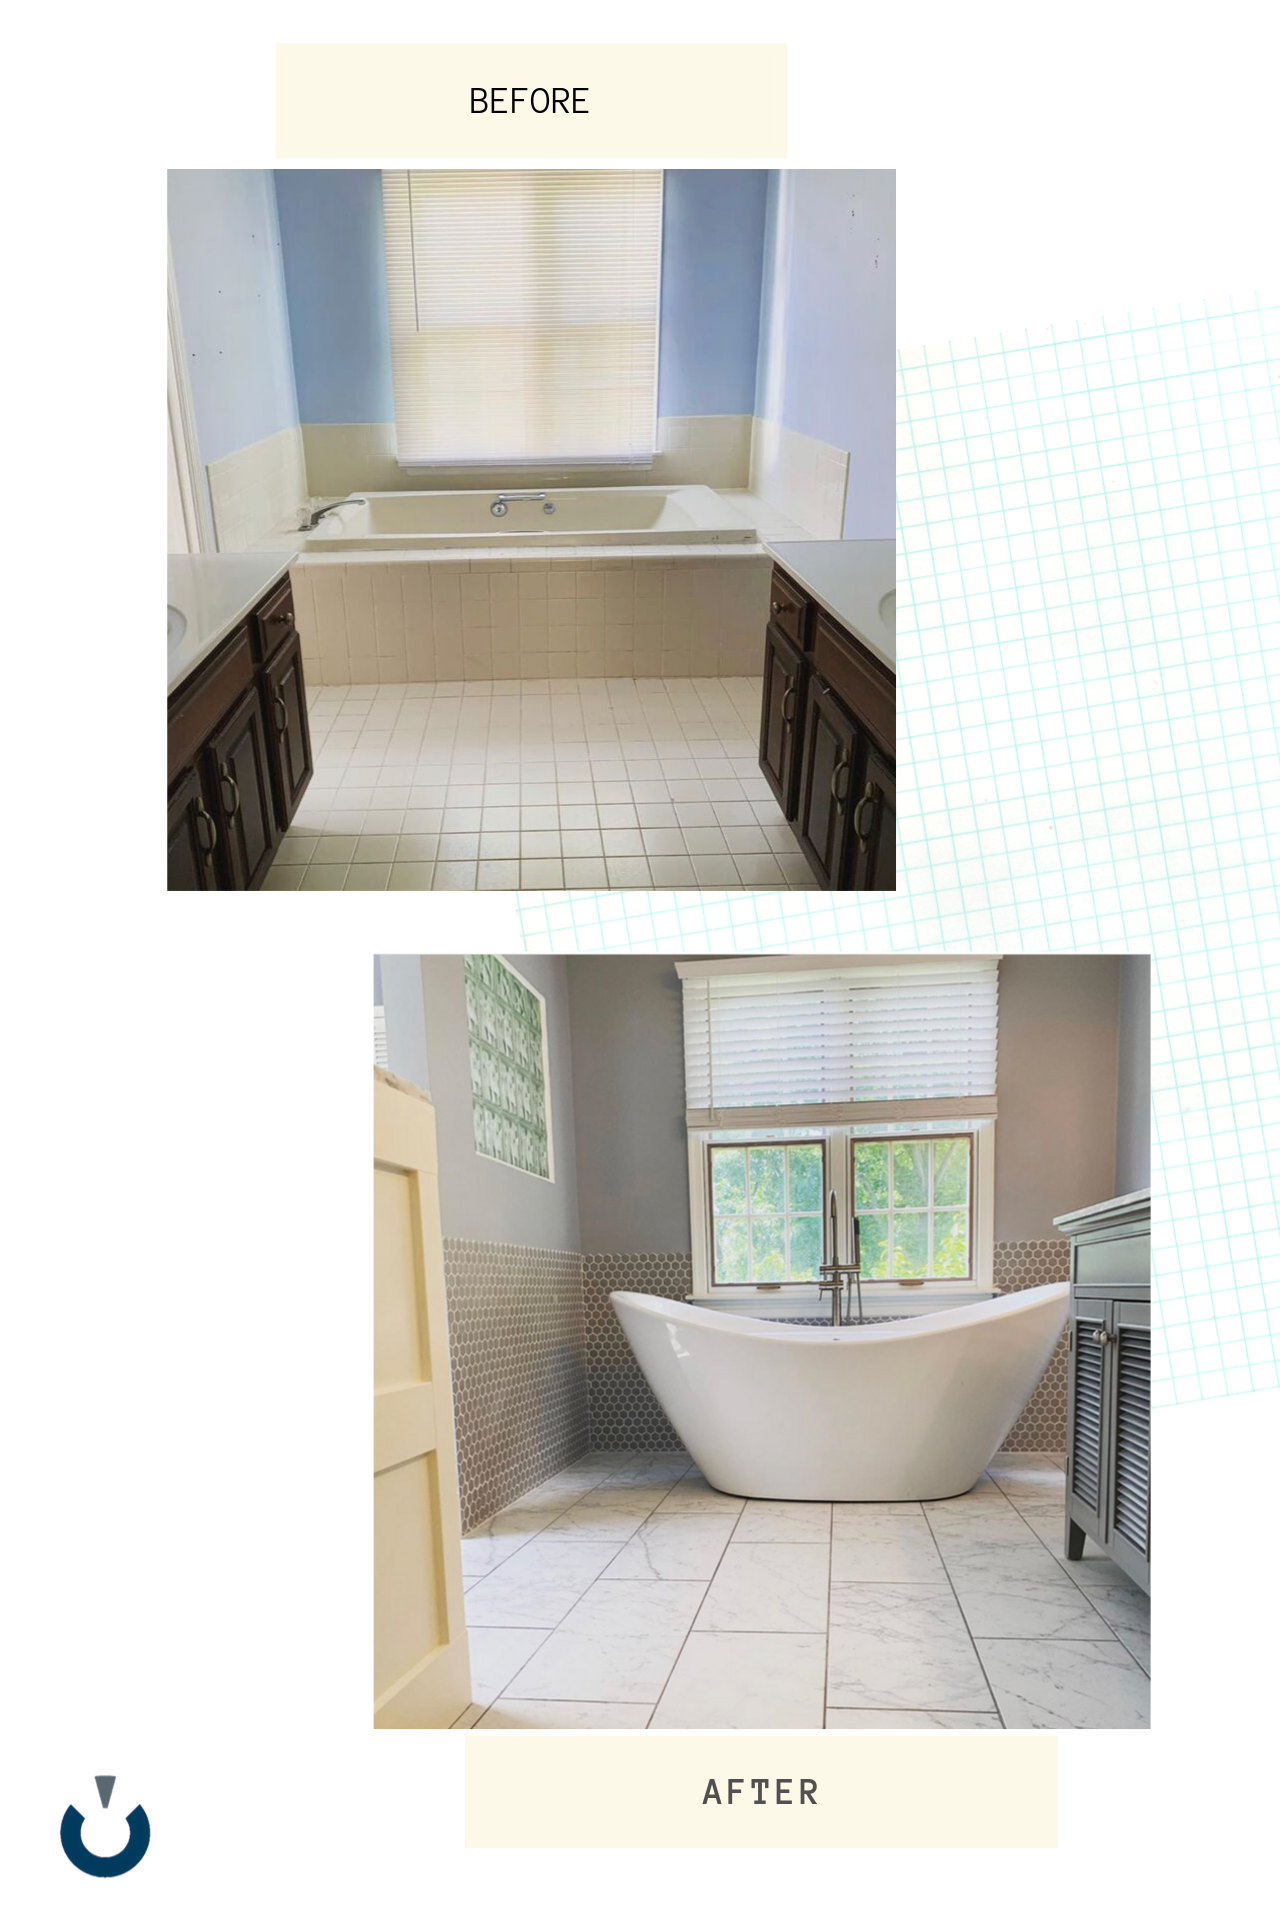 Home Remodeling Services in Northern Virginia Bathrooms